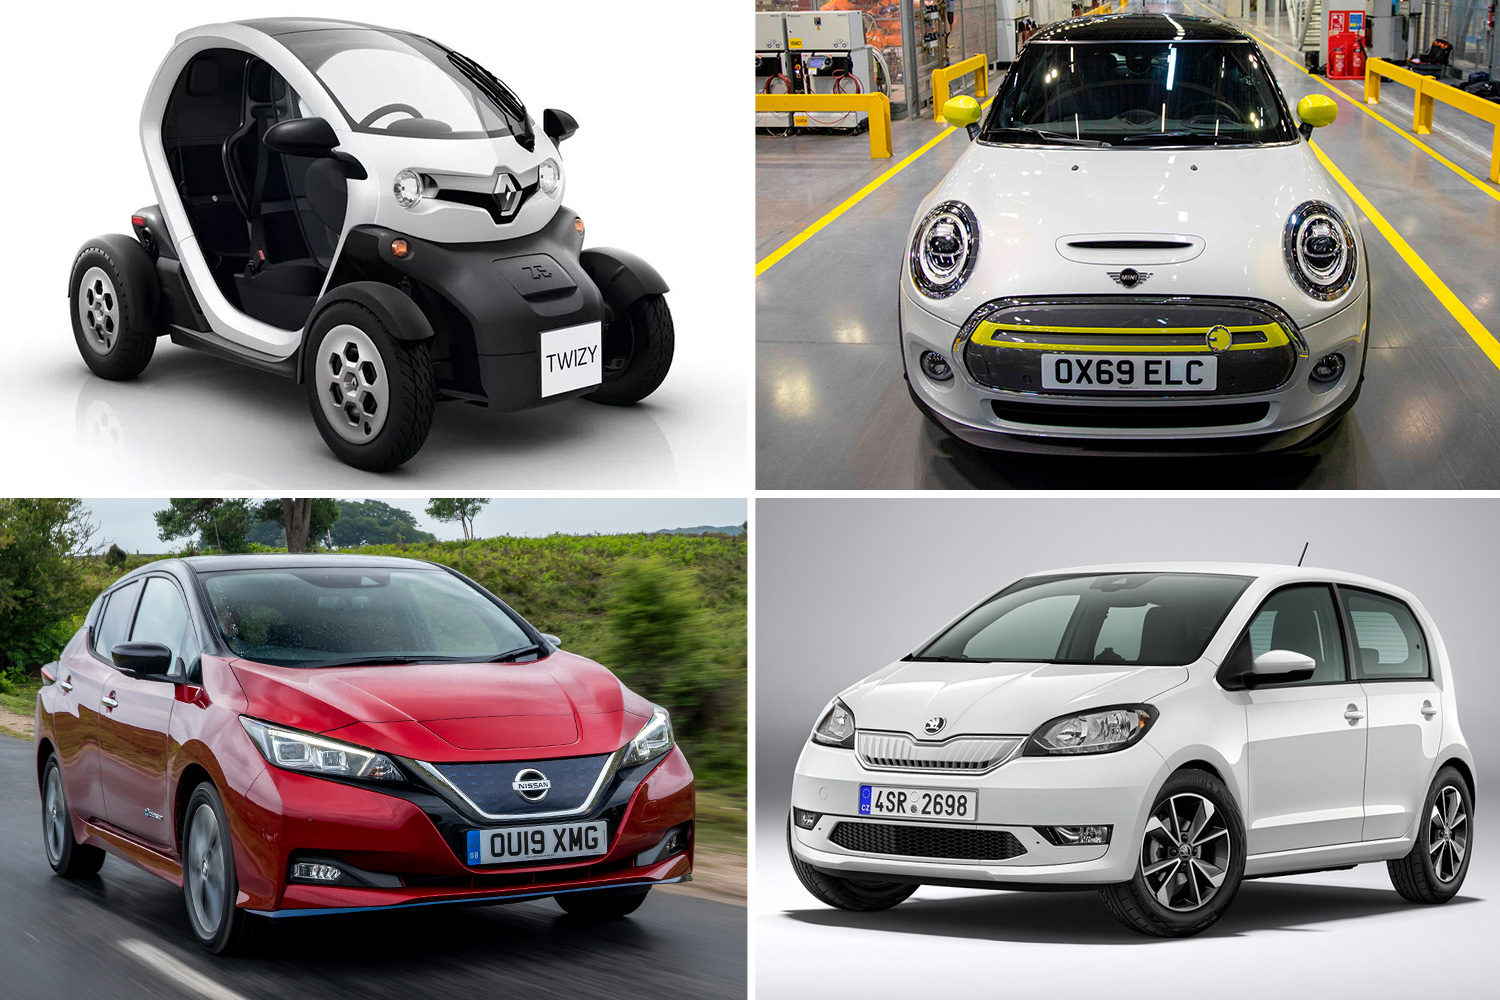 We round up some of the cheapest electric vehicles on sale in the UK